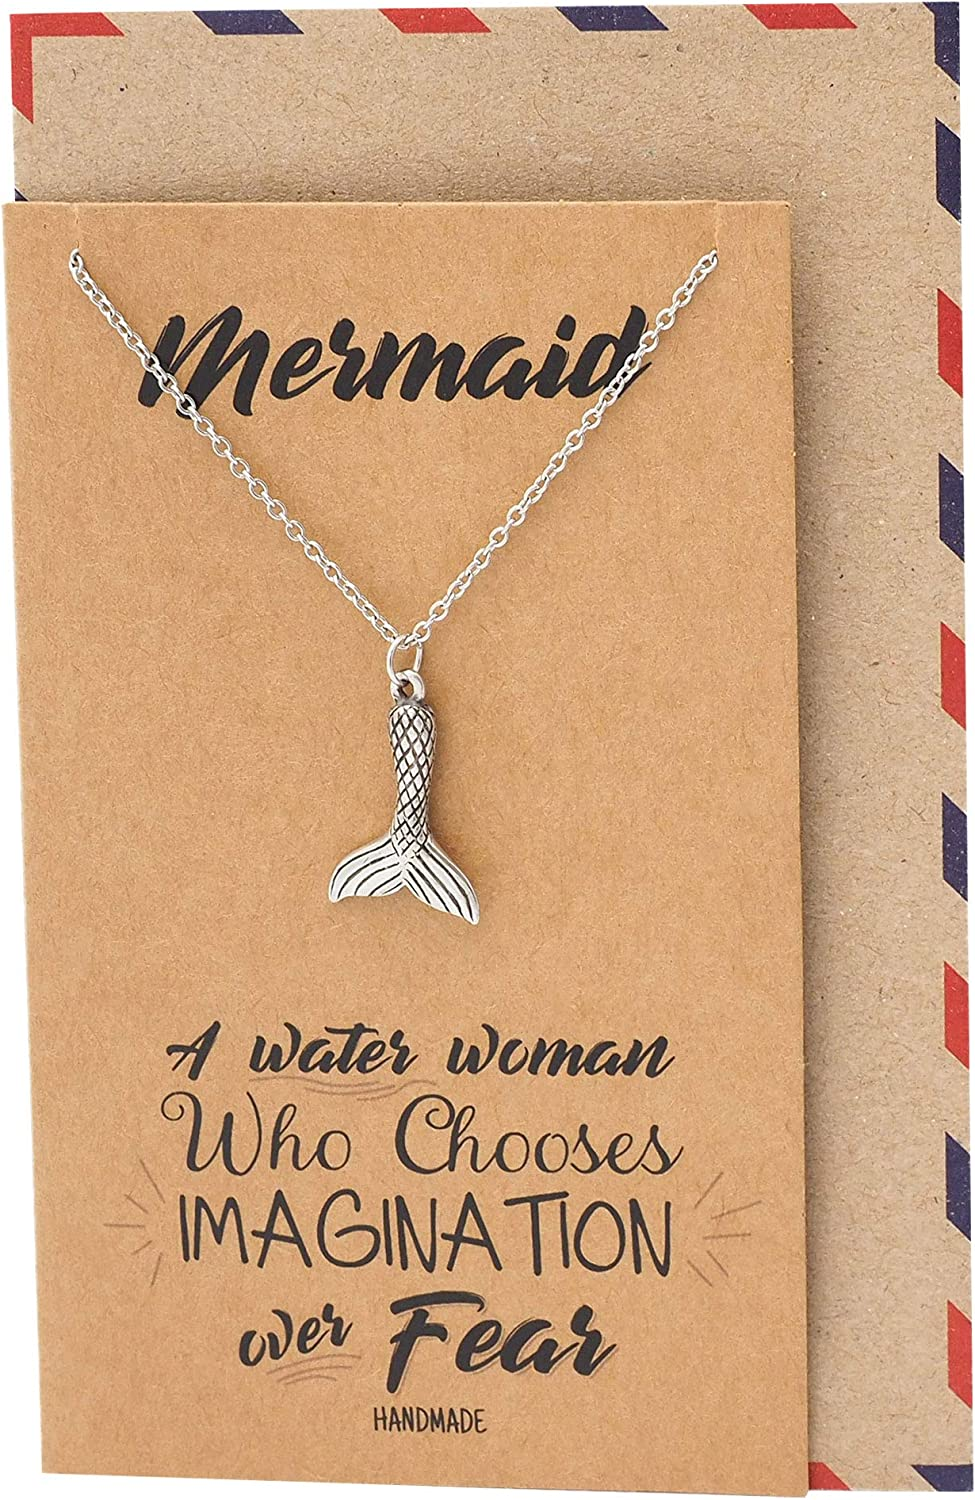 Quan Jewelry Mermaid Tail Pendant Necklace, Gifts for Mermaid Lovers, Beach Themed Collar Charm, Gifts for Women and Ocean Lovers for Special Occasions with Inspirational Quote on Greeting Card